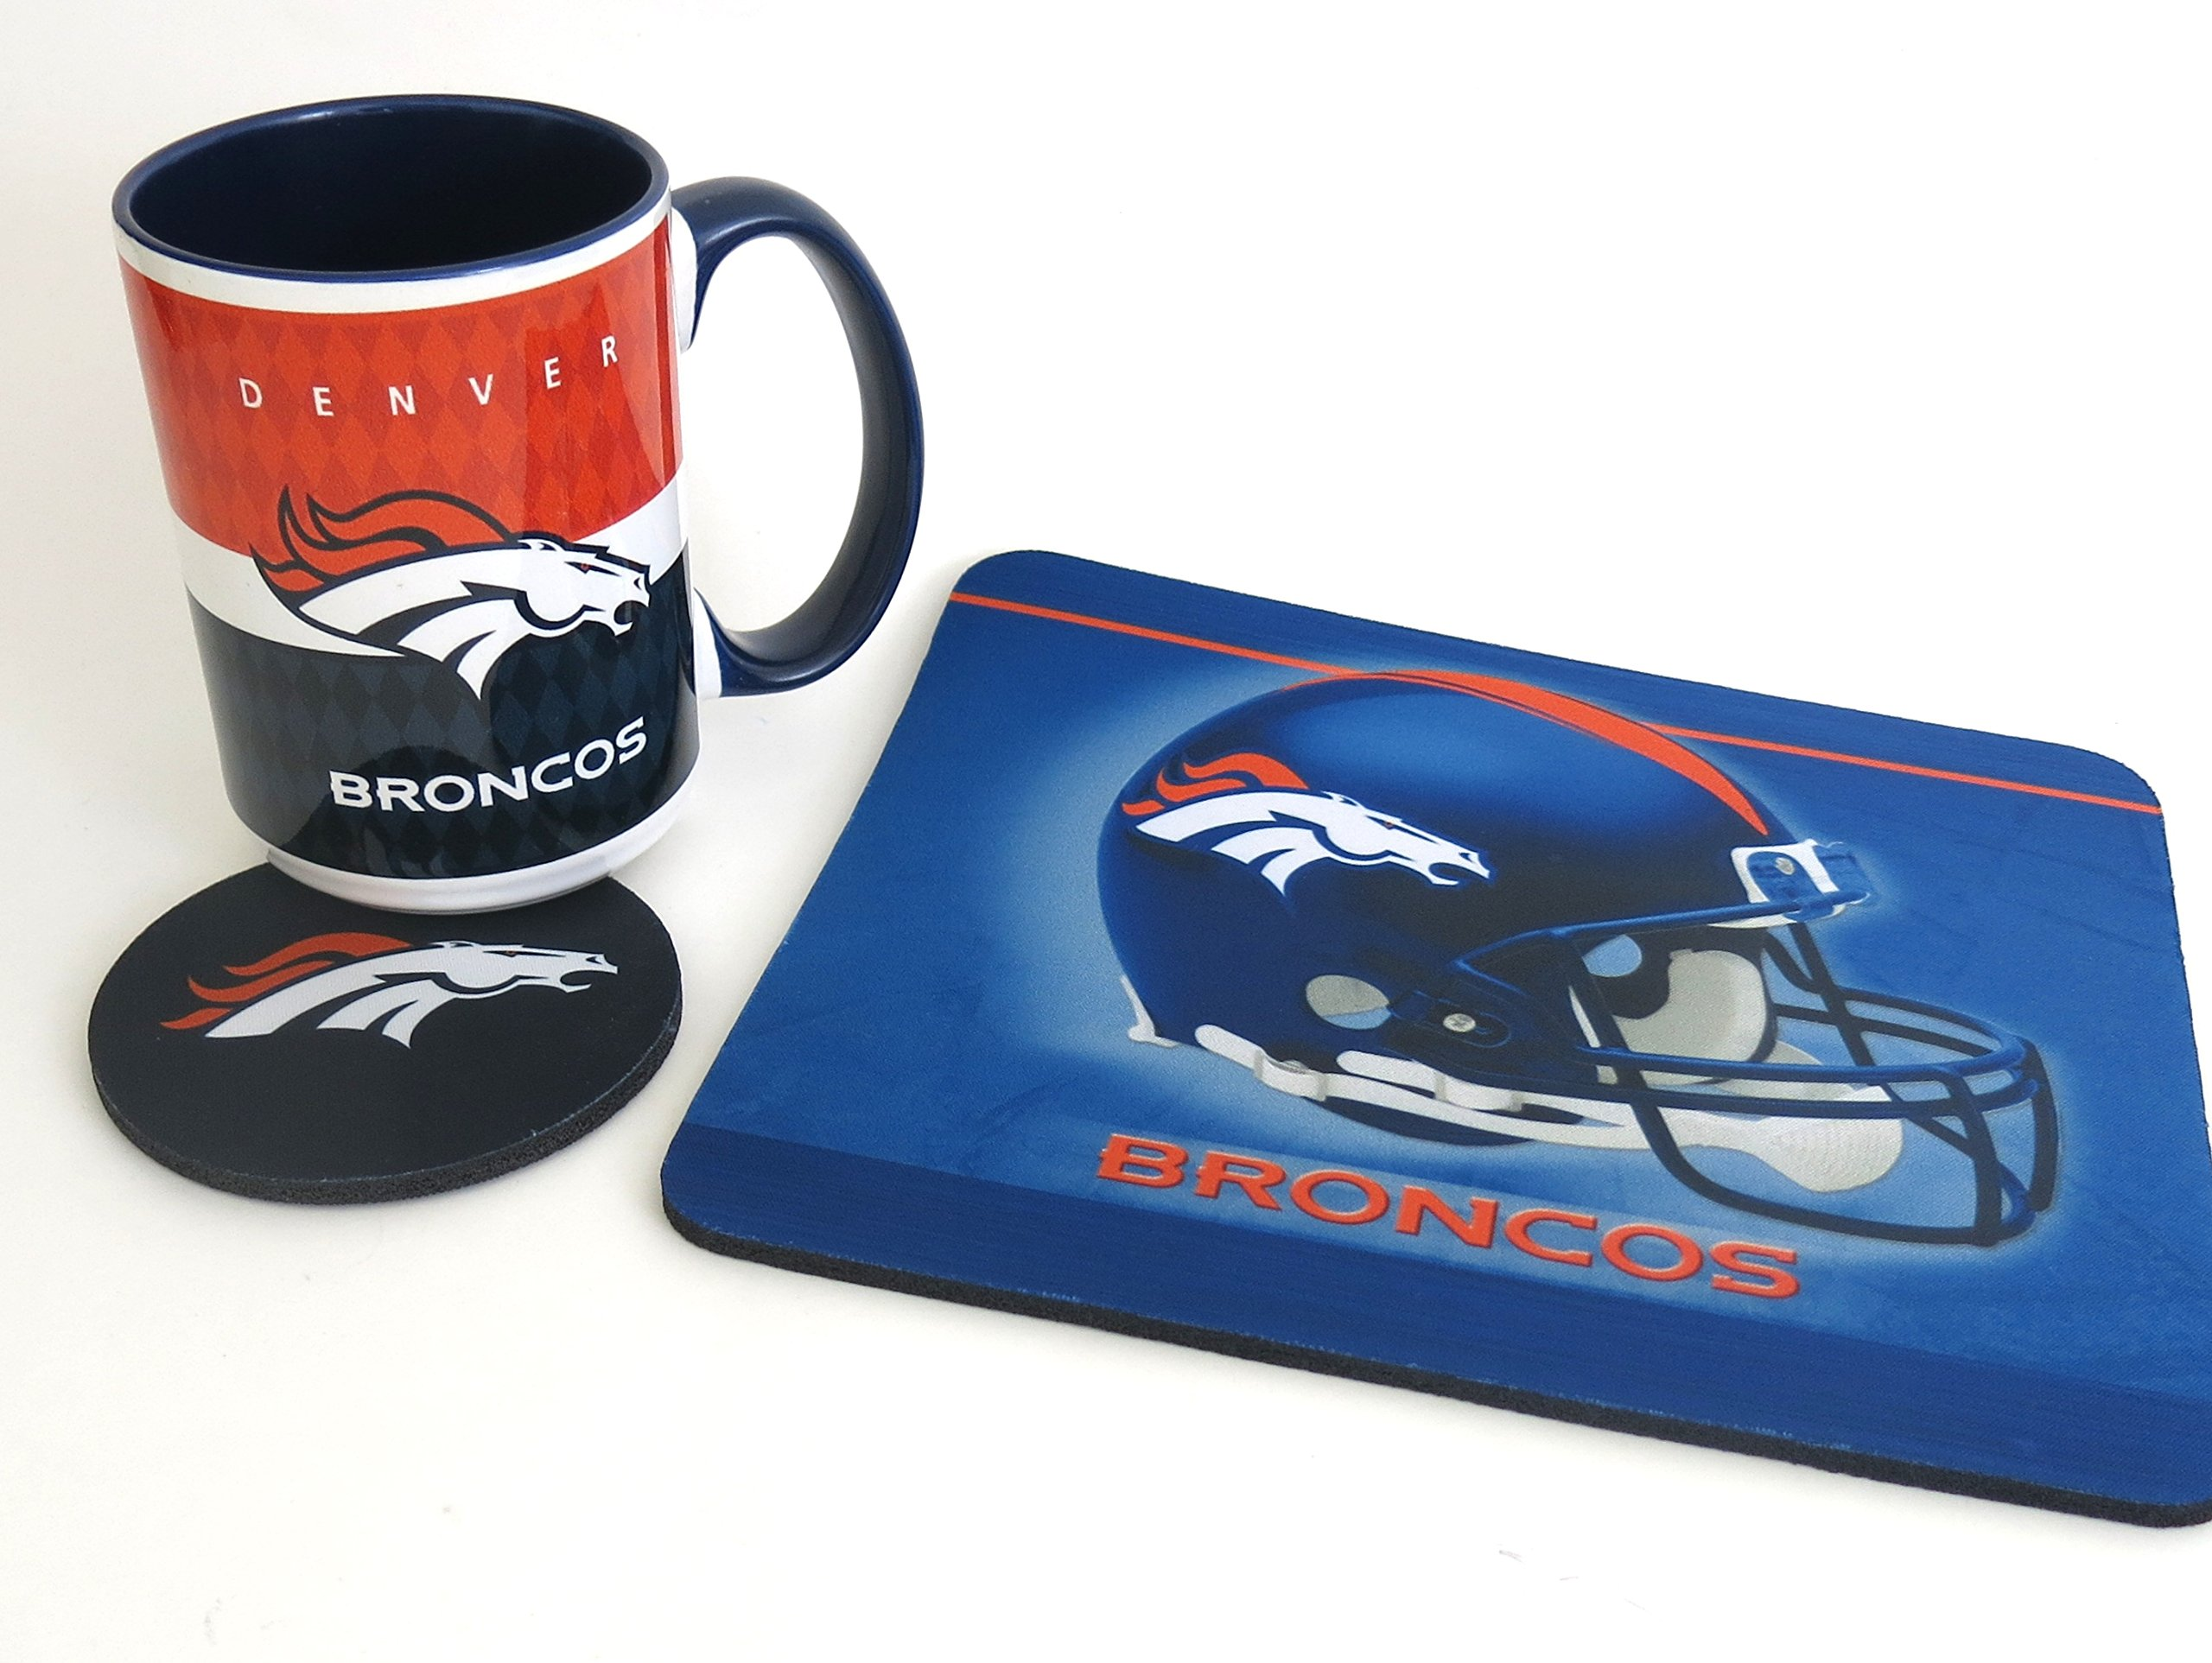 Denver Broncos computer workstation set. 3 piece set includes a large coffee mug, Mouse pad and Coaster